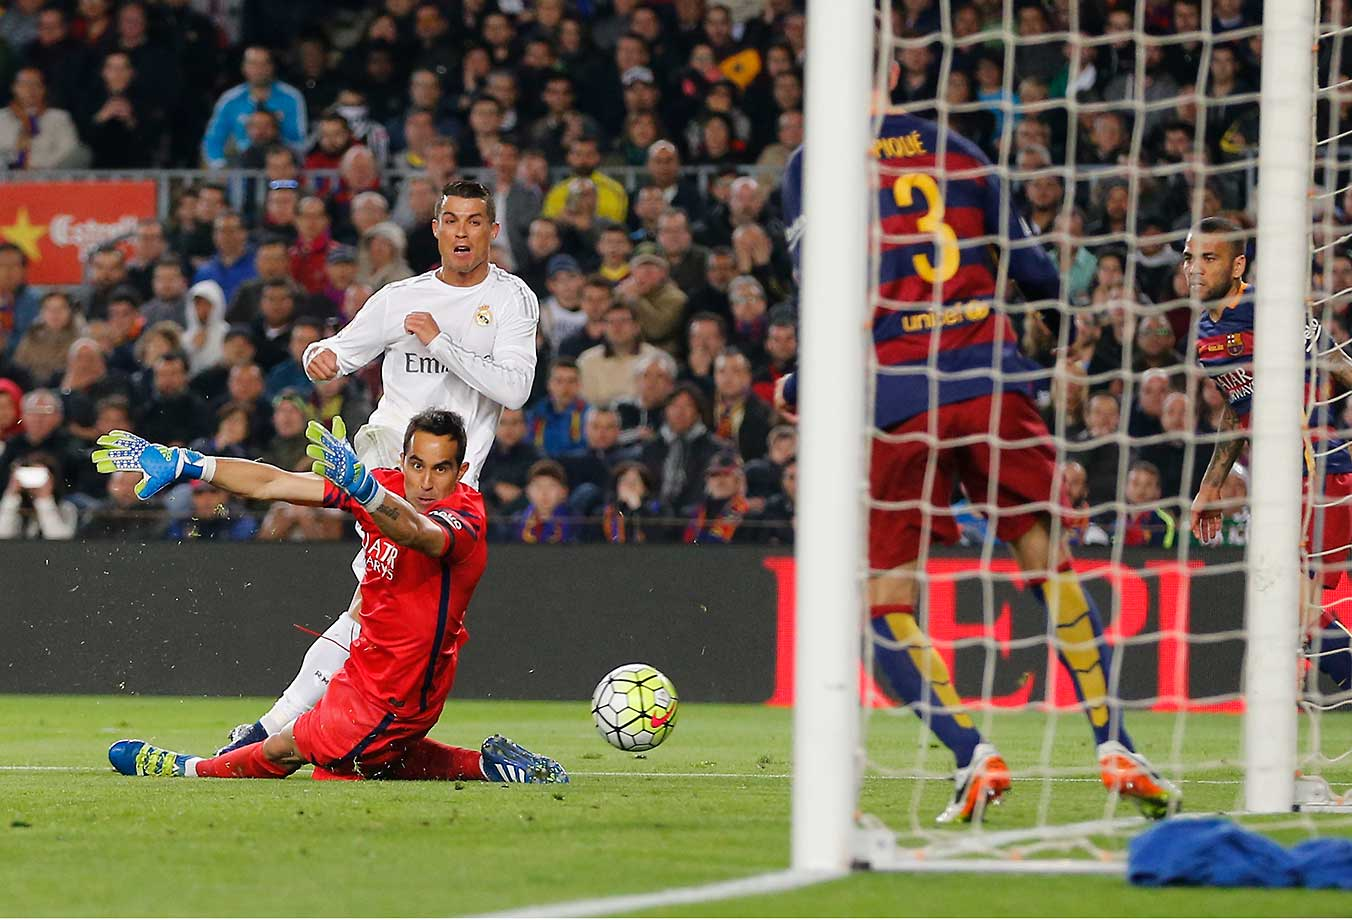 Cristiano Ronaldo of Real Madrid scores the winning goal during the La Liga match between FC Barcelona and Real Madrid CF at Camp Nou.